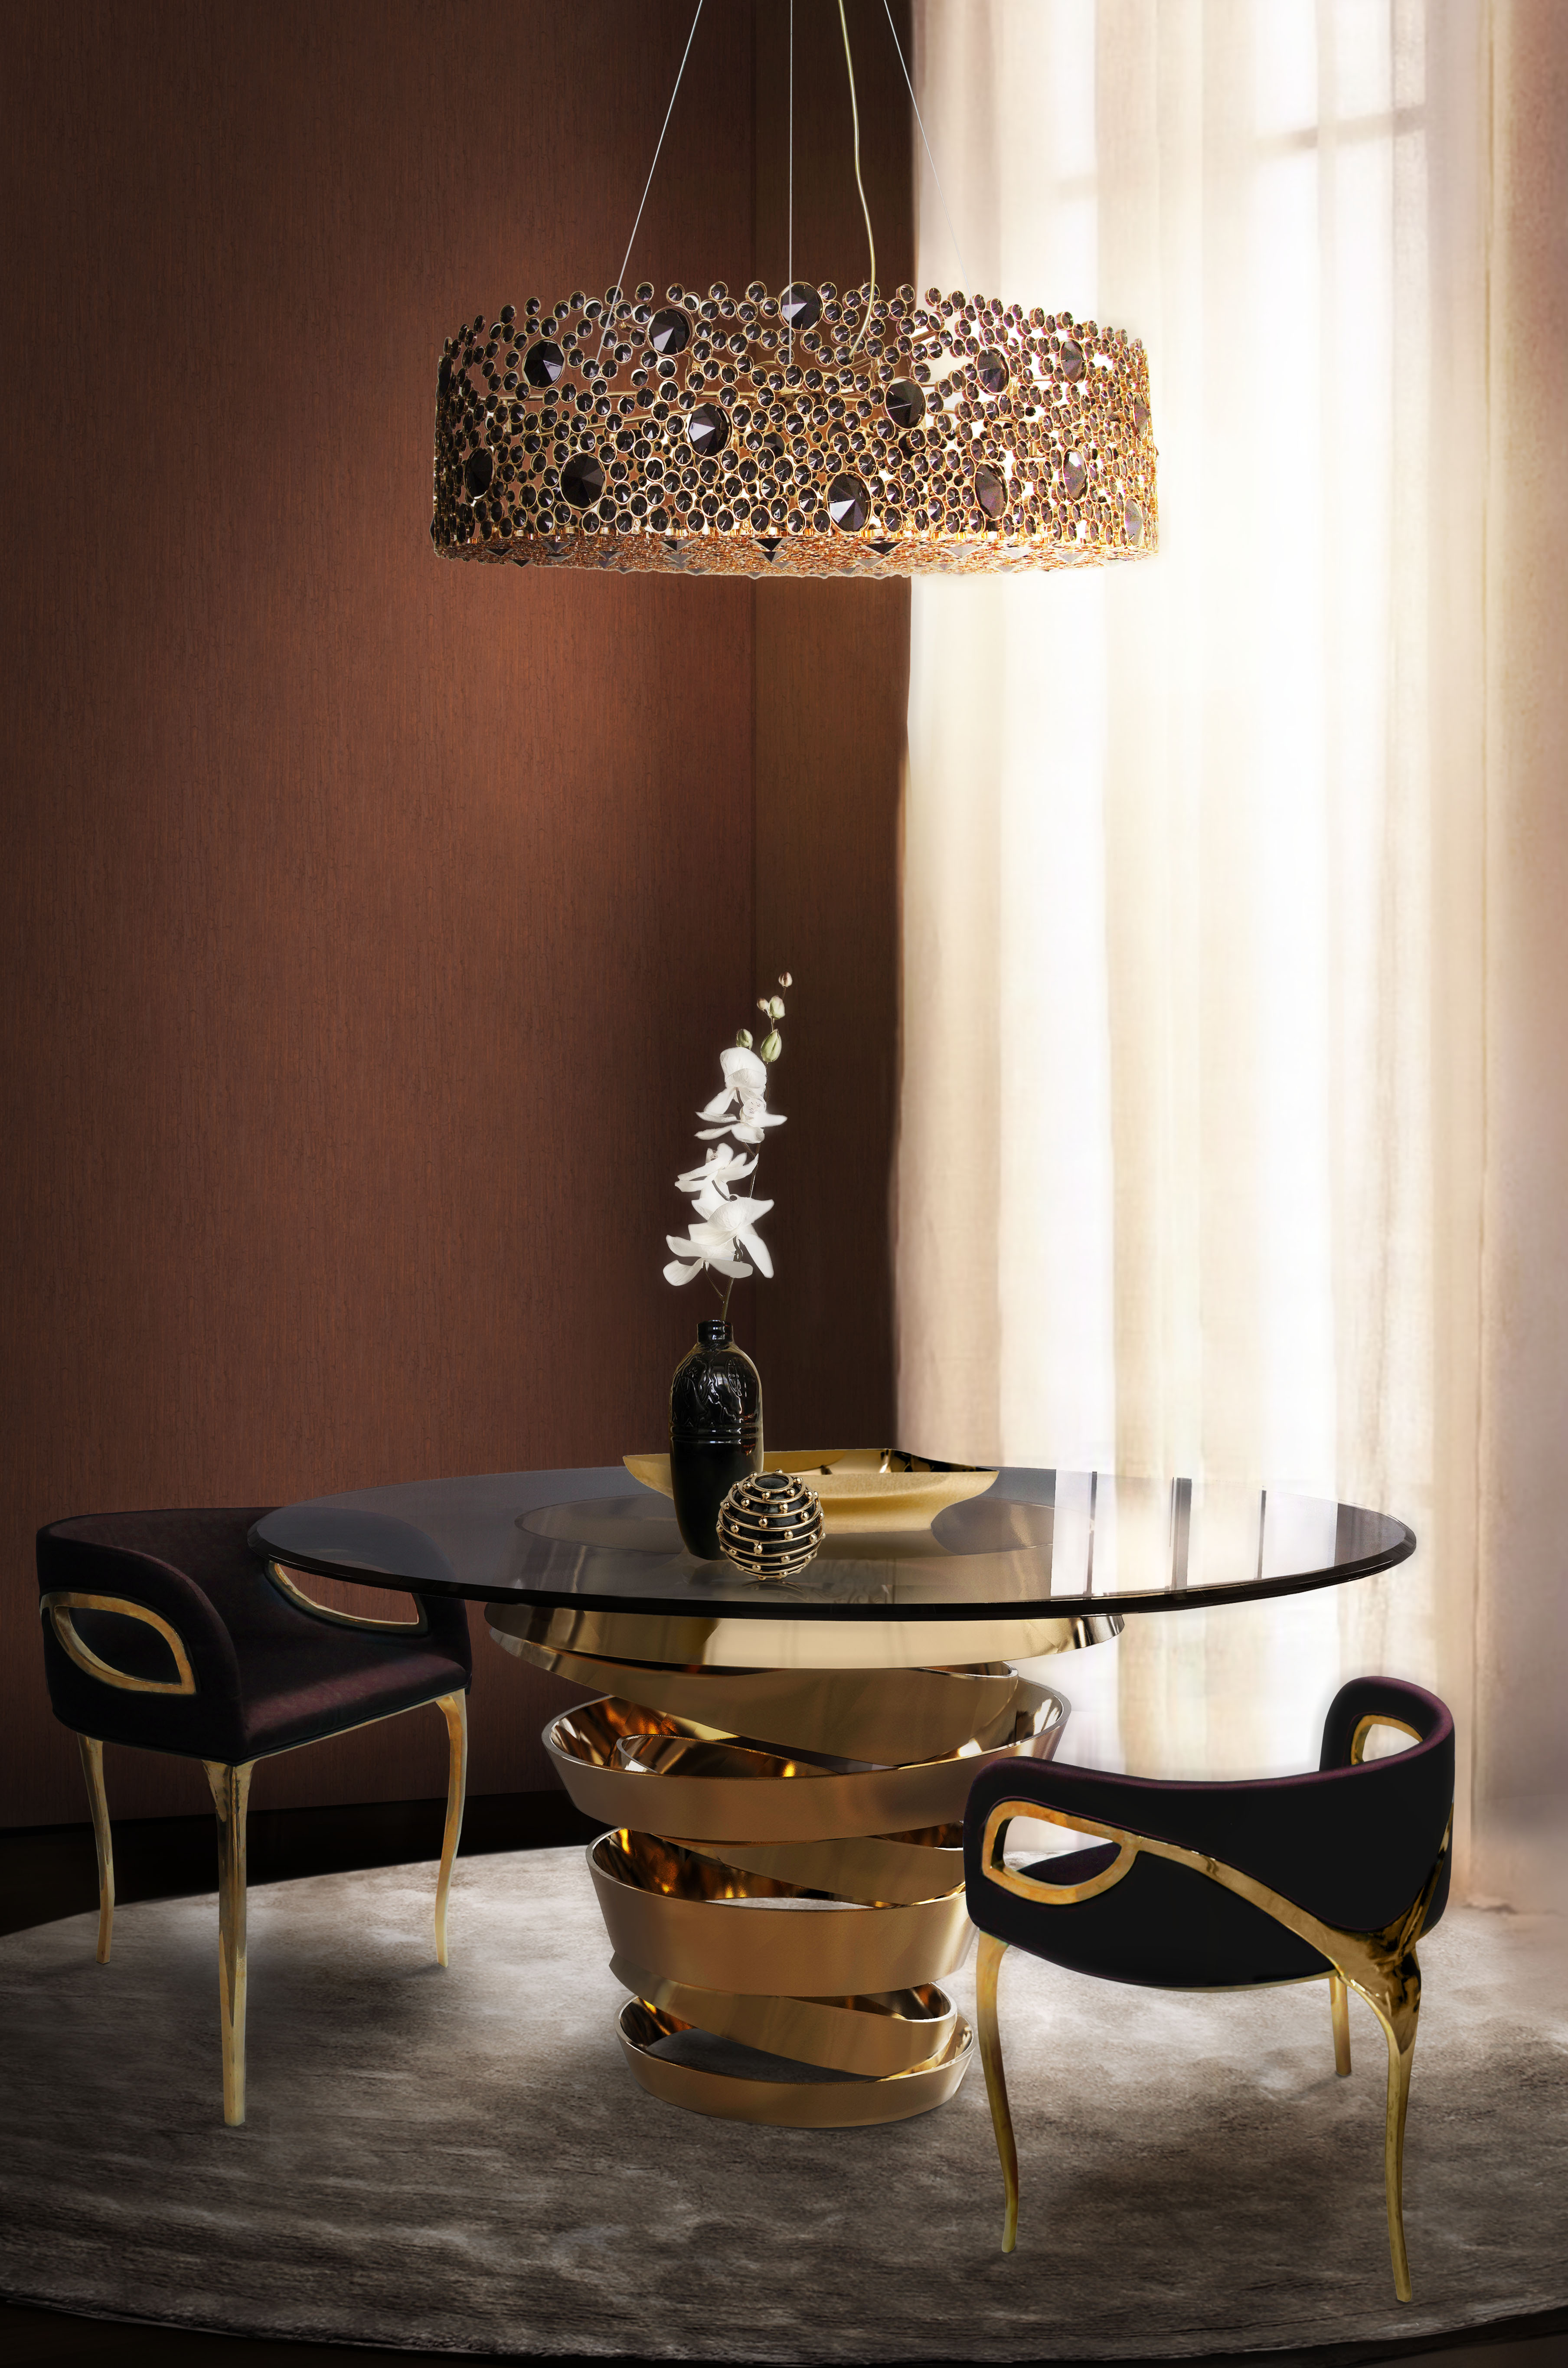 Gold And Black Living Room Ideas Of The Best Black And Gold Decorating Ideas For Your Dining Room